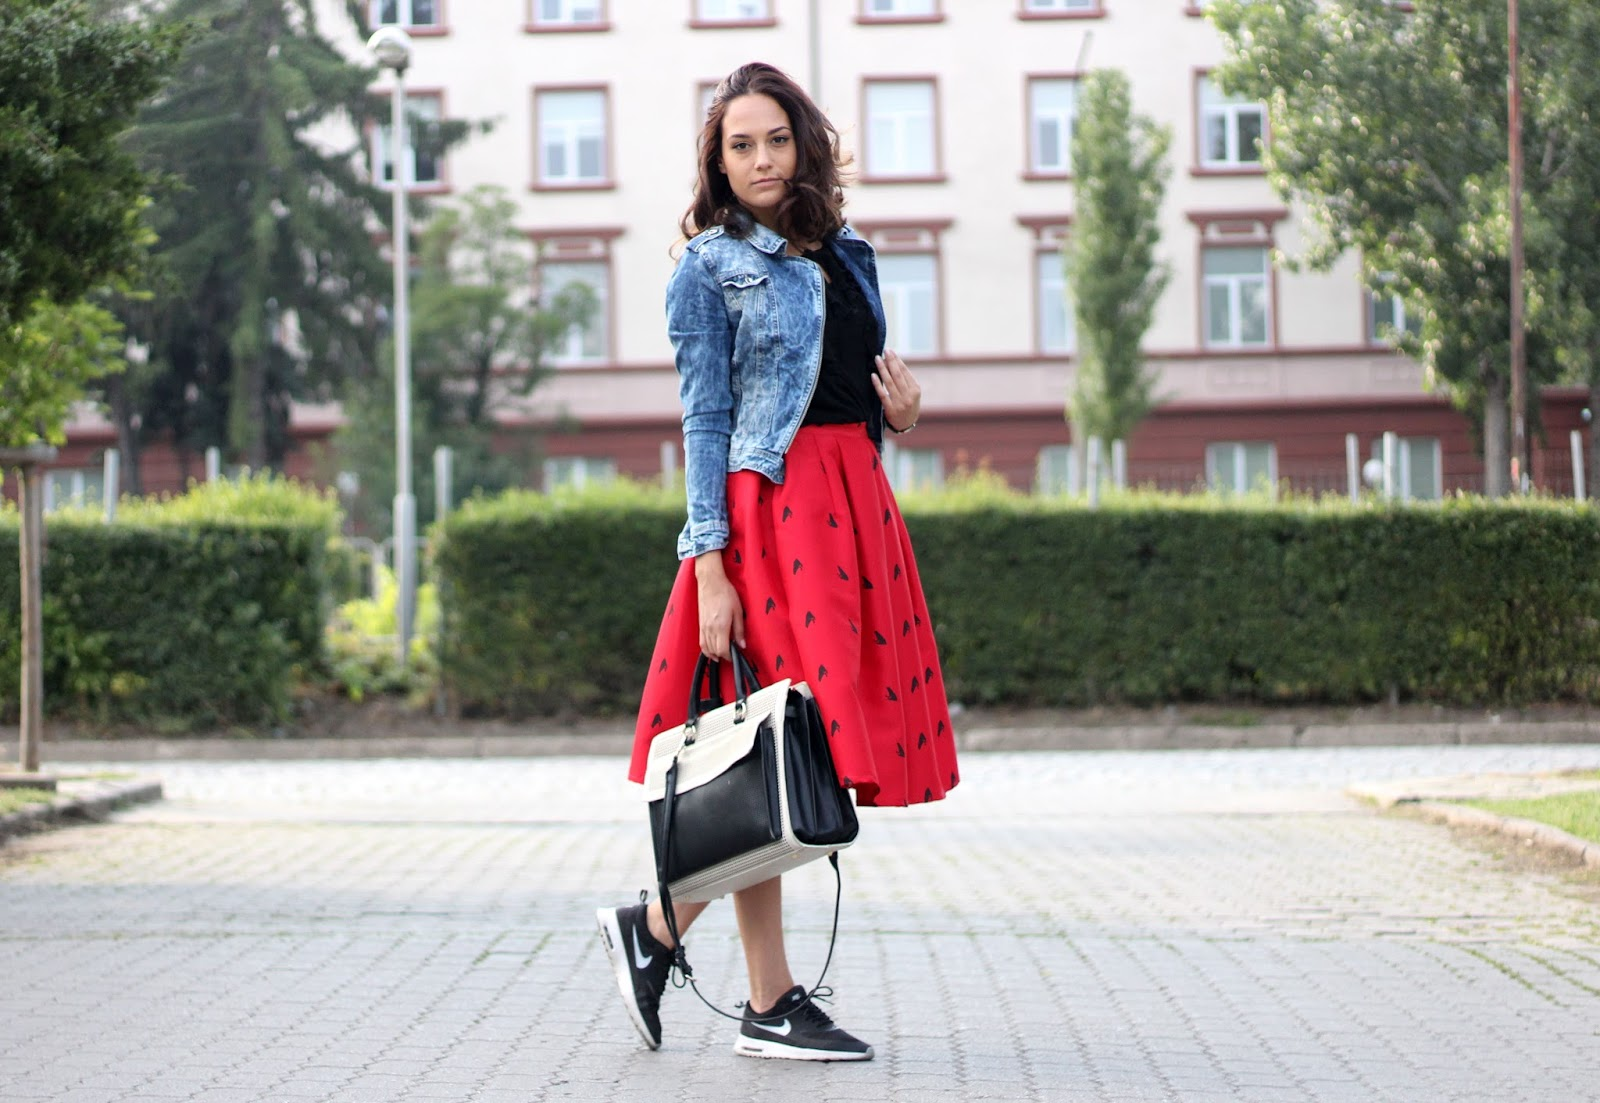 red romwe skirt quitealooker review fashion blog blogger